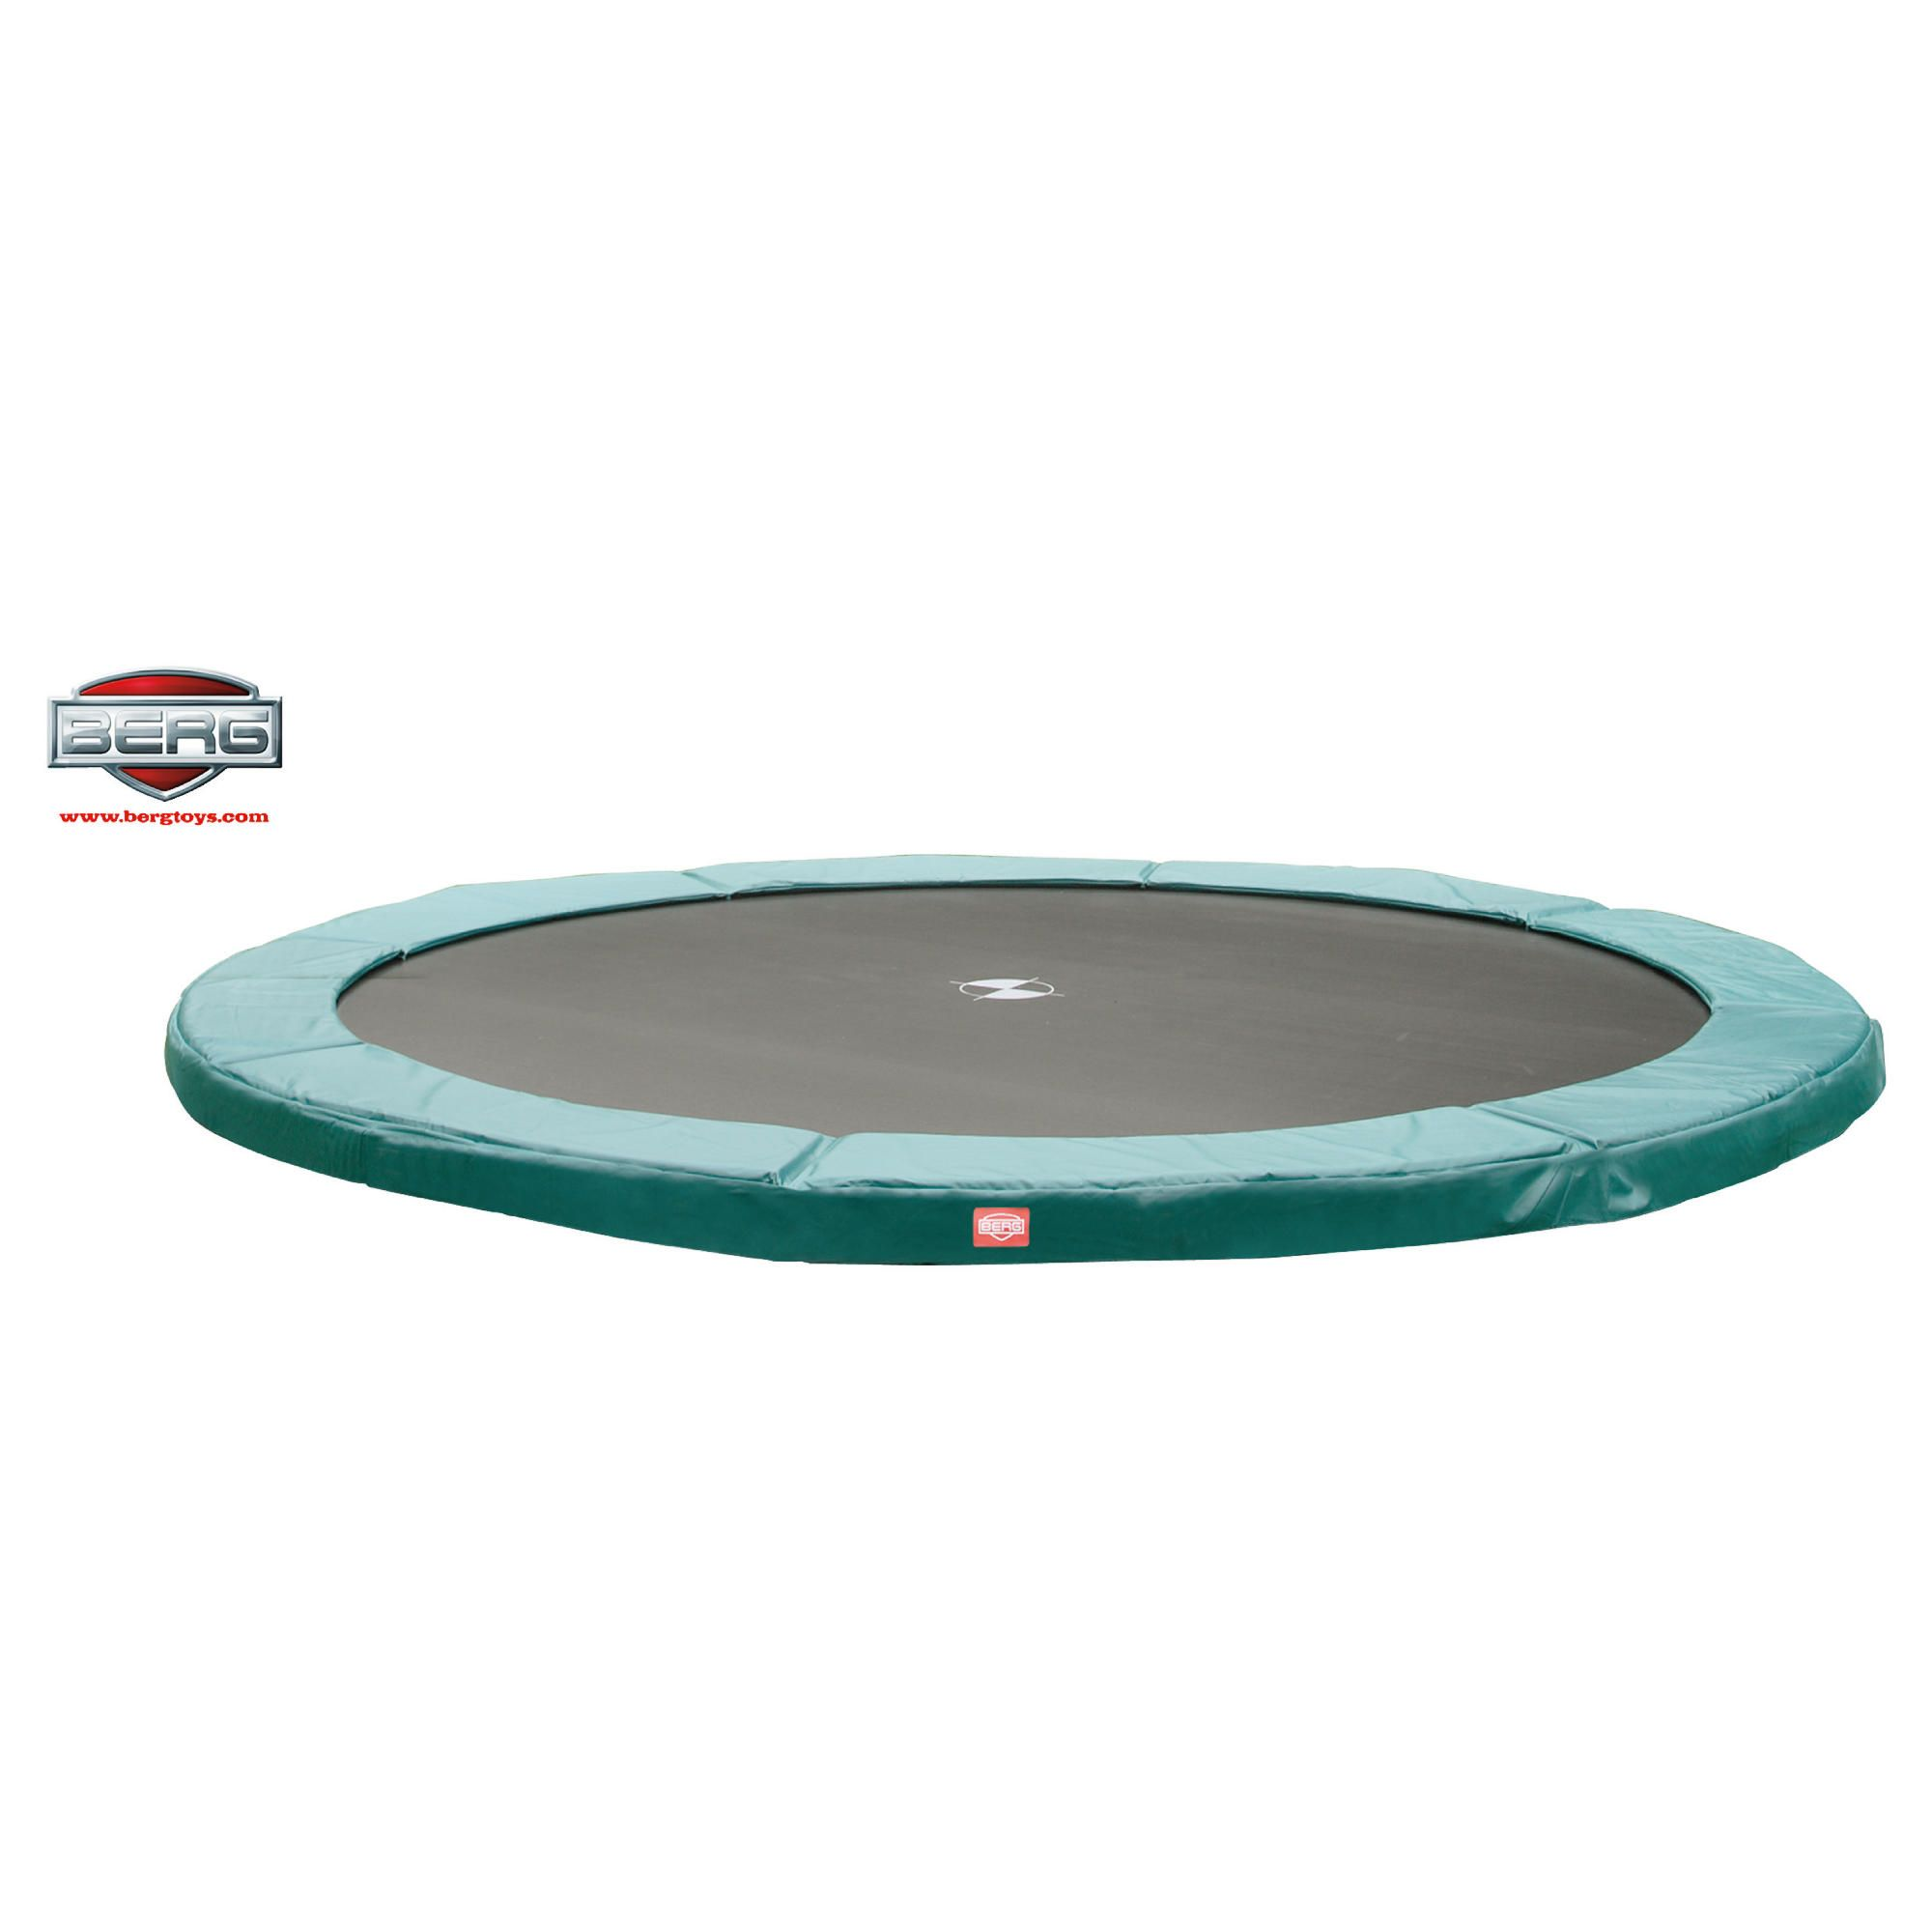 Berg 9ft In-ground Trampoline at Tesco Direct